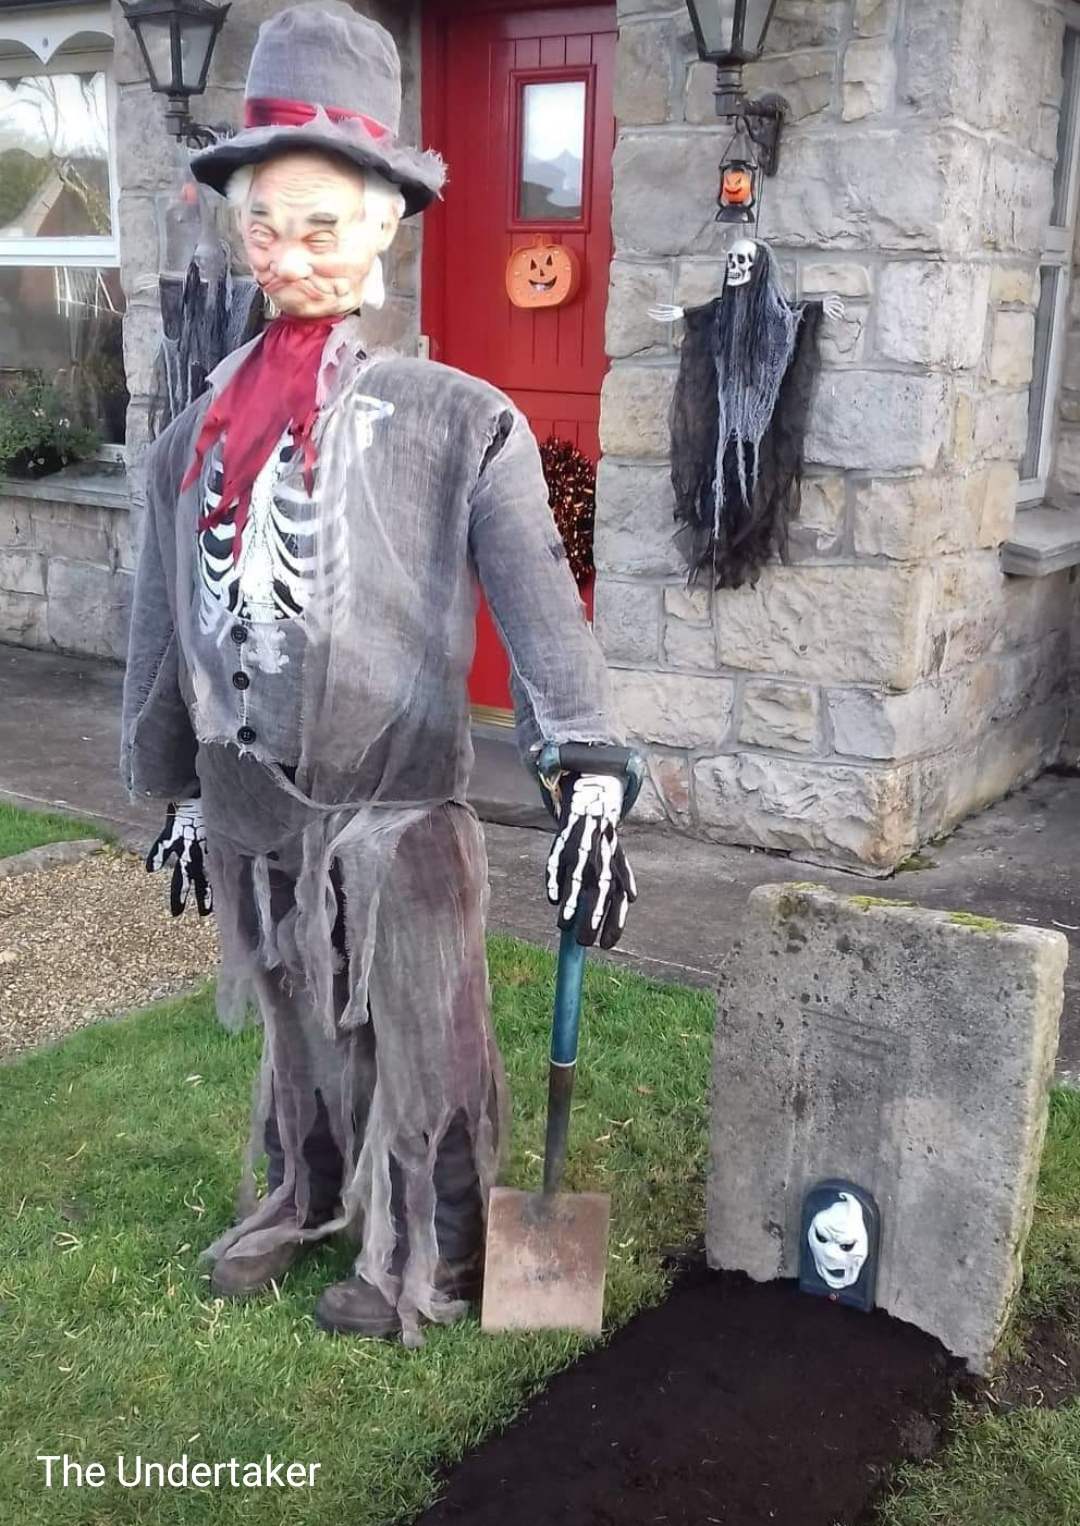 The Undertaker - one of the scarecrows in Keshcarrigan